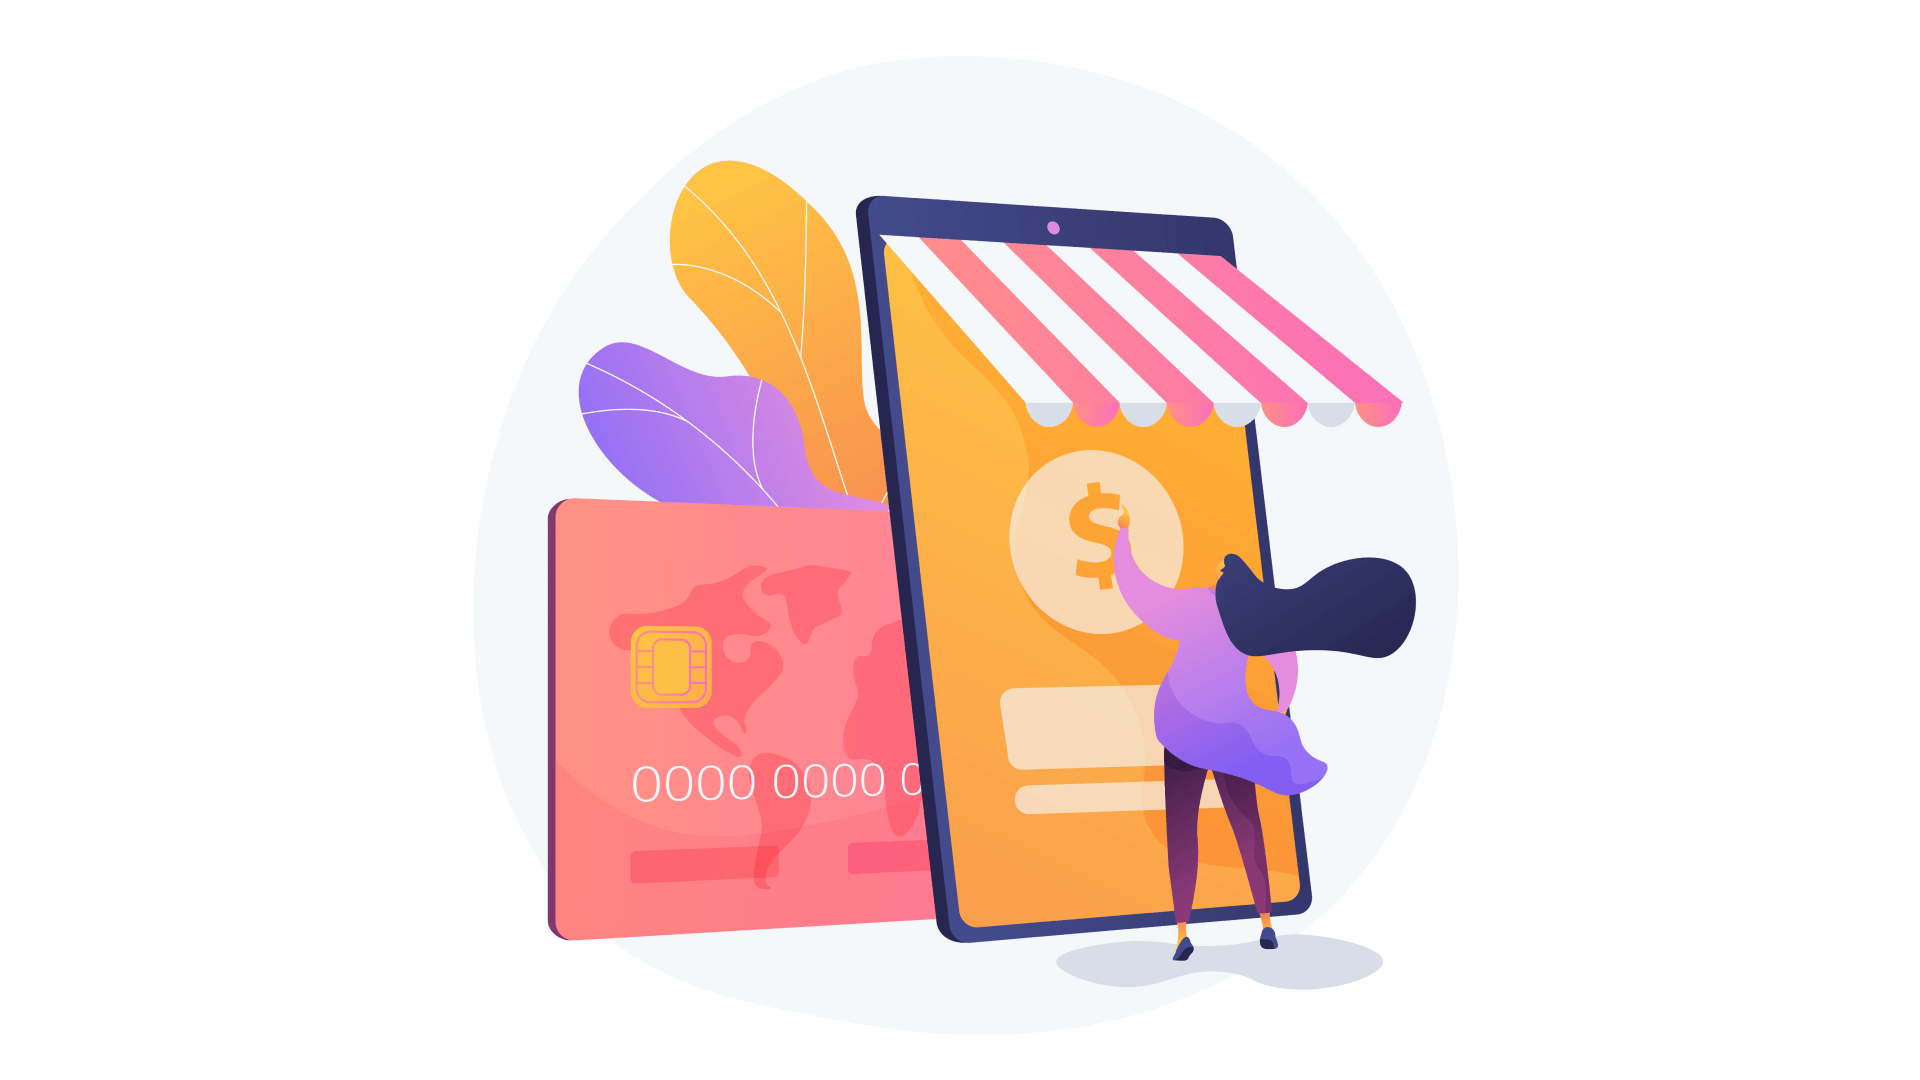 Finally, let's dive into the most popular monetization models to guarantee your mobile banking application commercial success.